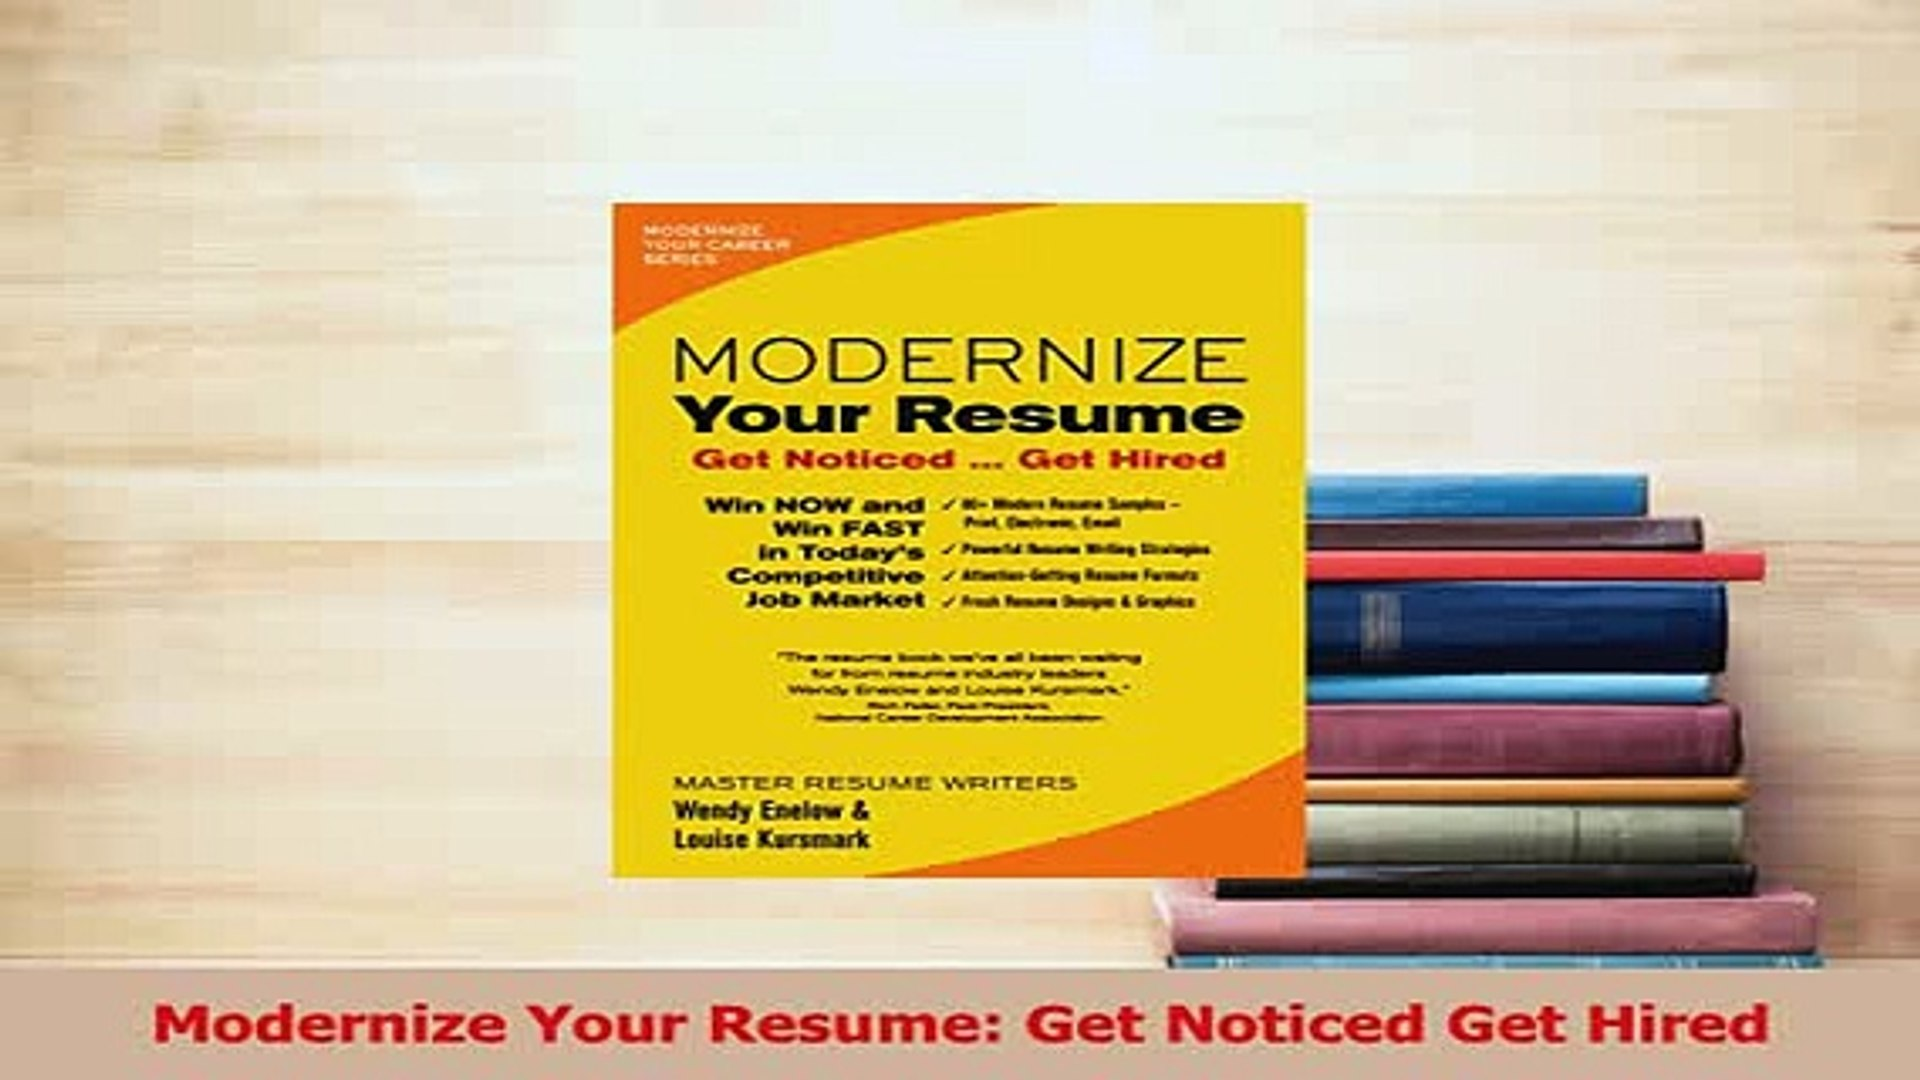 pdf modernize your resume get noticed hired full ebook dailymotion software for mac Resume Modernize Your Resume Get Noticed Get Hired